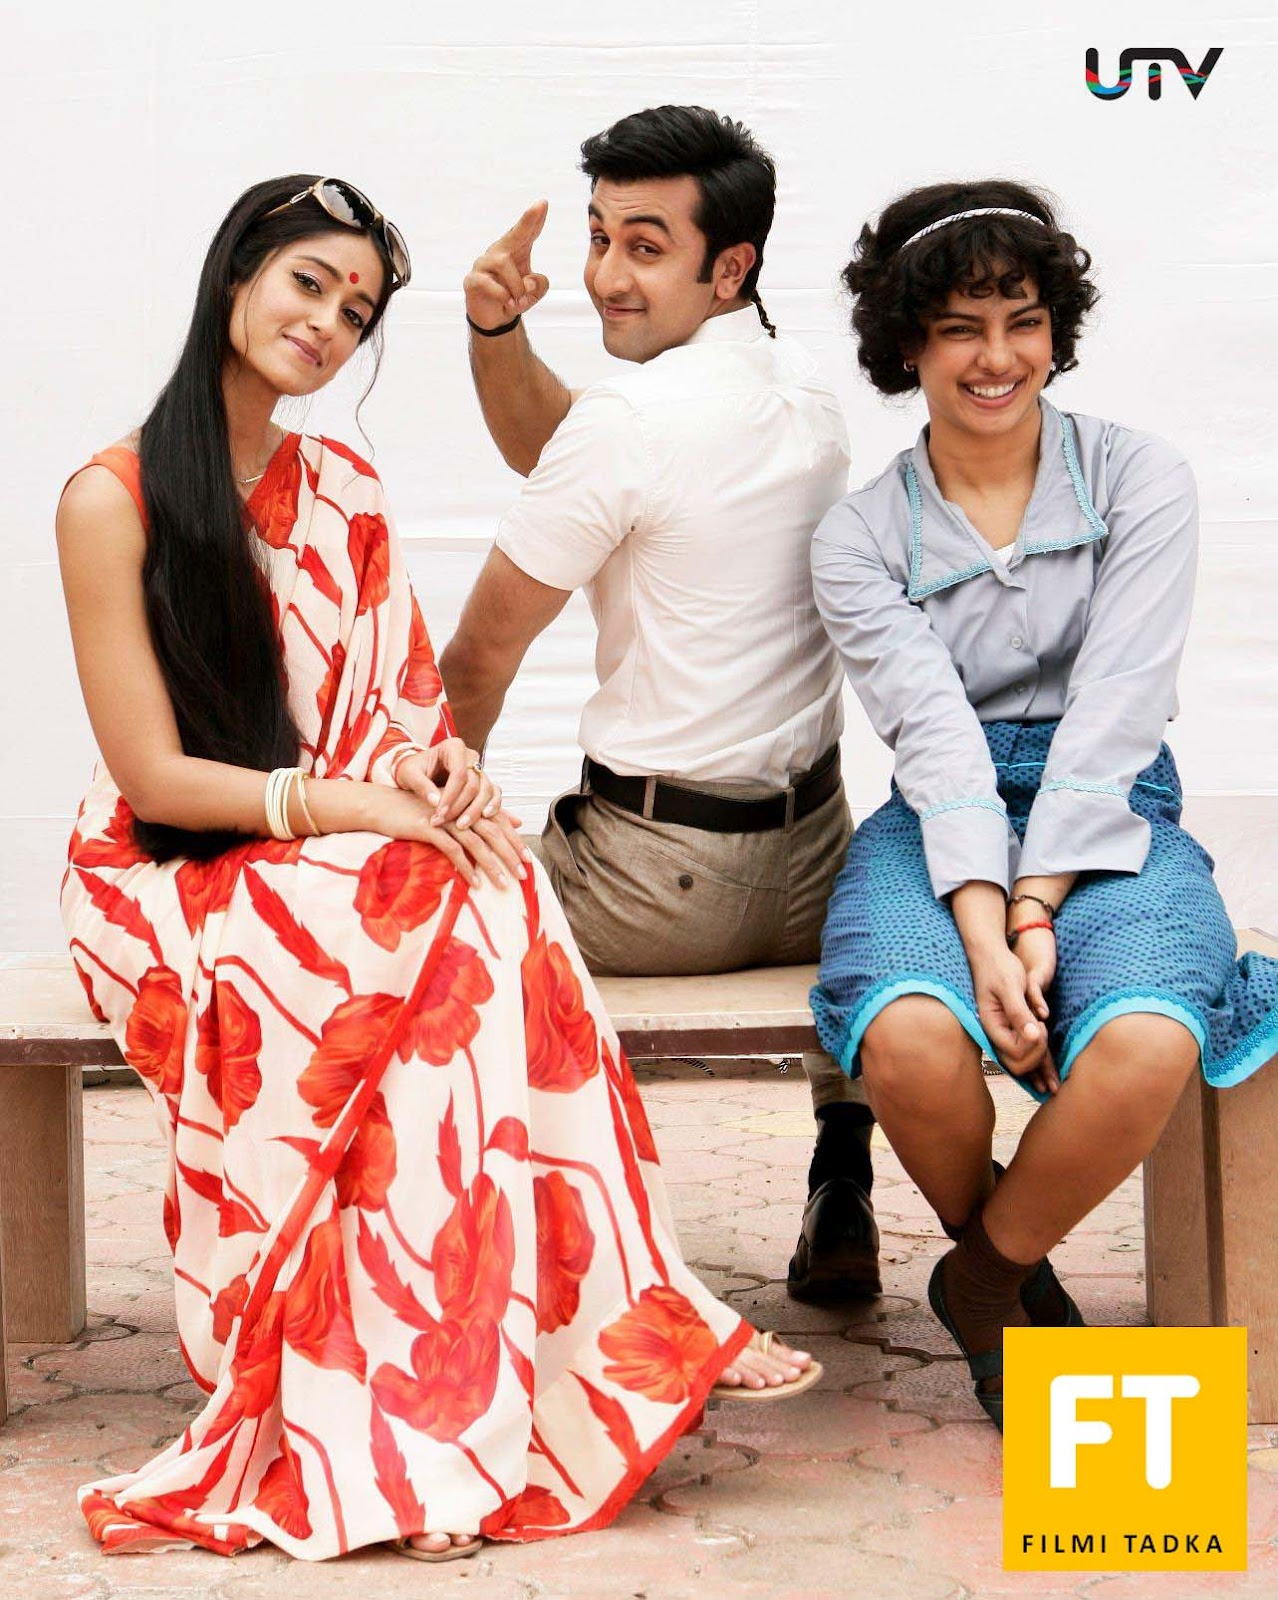 http://4.bp.blogspot.com/-9THwXIS4hQU/UG3w918wP5I/AAAAAAAAAc4/3wOf1s_cvX4/s1600/barfi_movie_wallpapers_20120828_1054461420.jpg